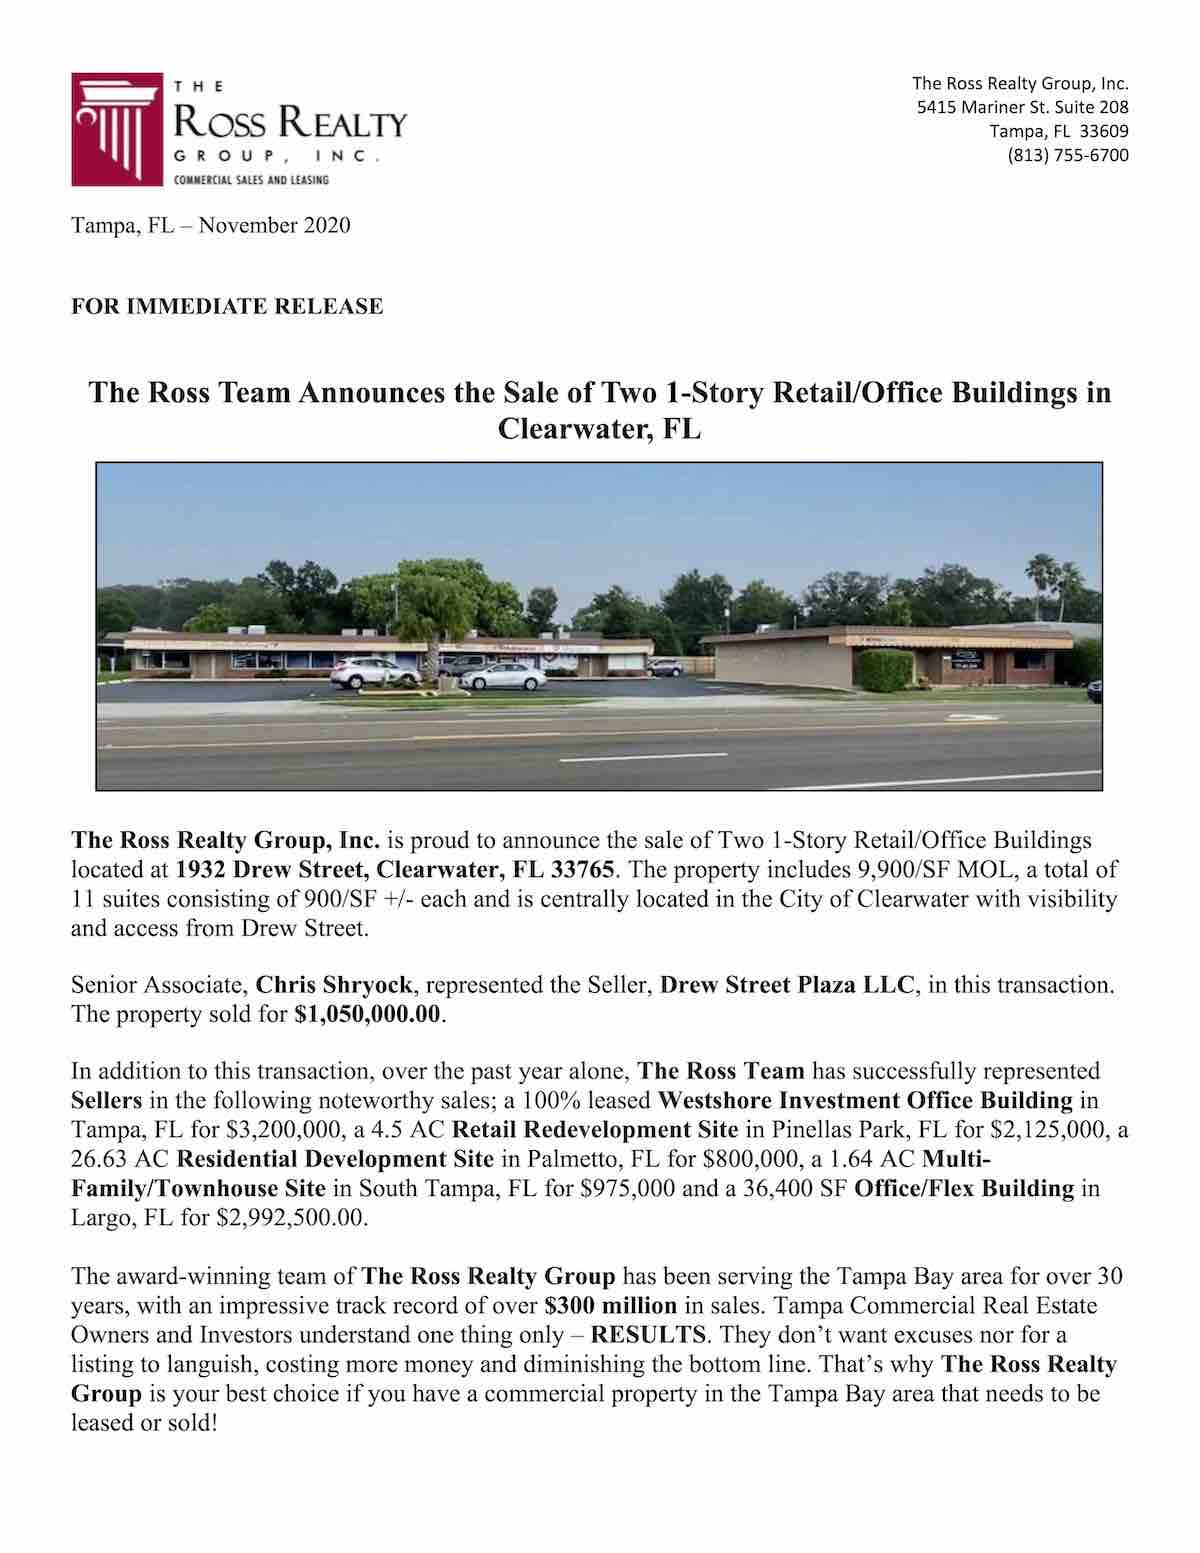 Tampa Commercial Real Estate - Drew St Plaza 1932 SALE - Drew Street, Clearwater, FL 33765 P1